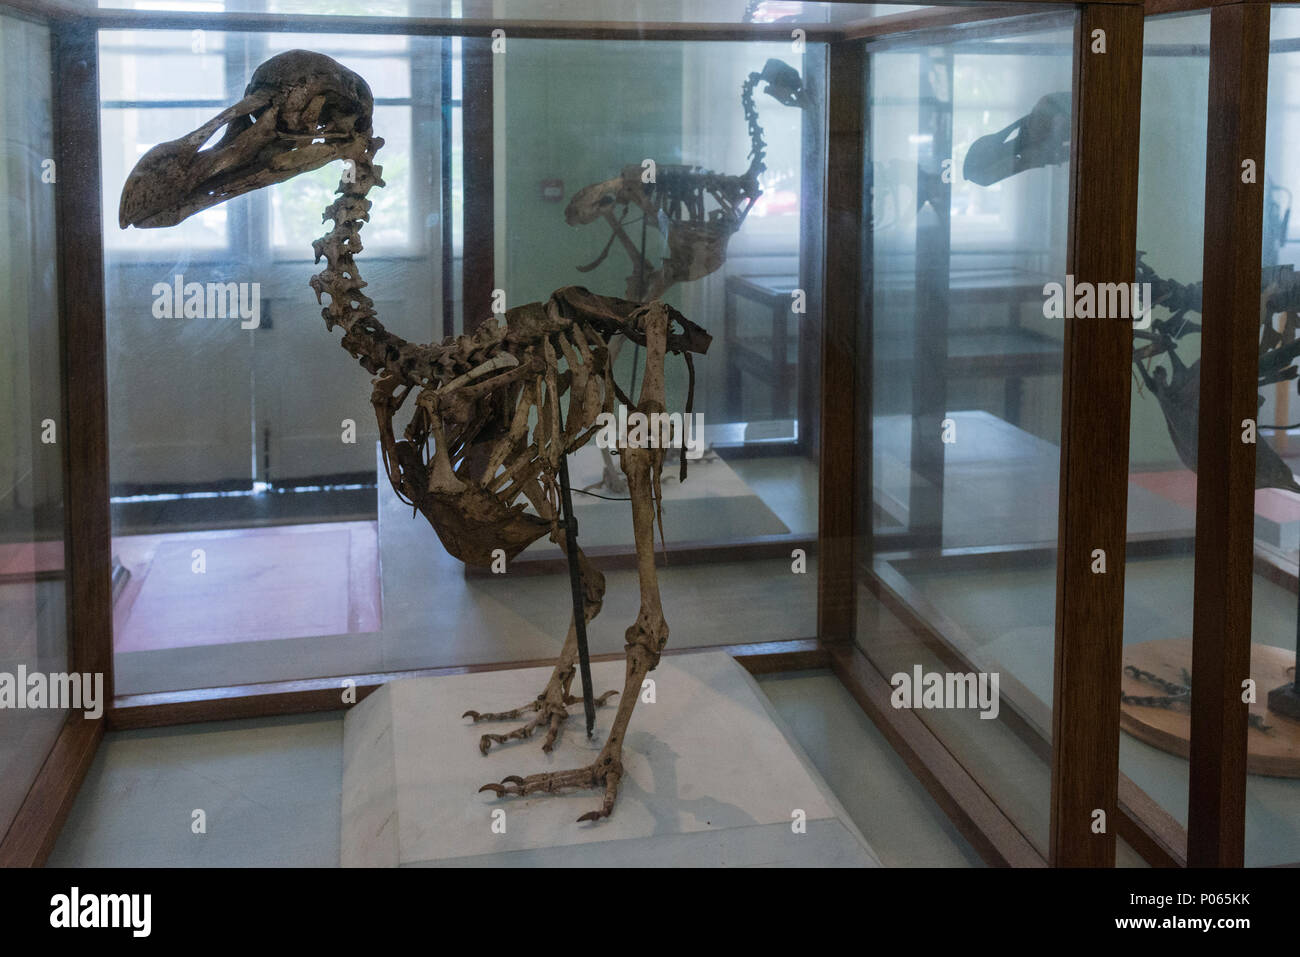 Skeletons of dodos, extinct flightless birds, in the Natural History Museum, Port Louis, Mauritius Stock Photo